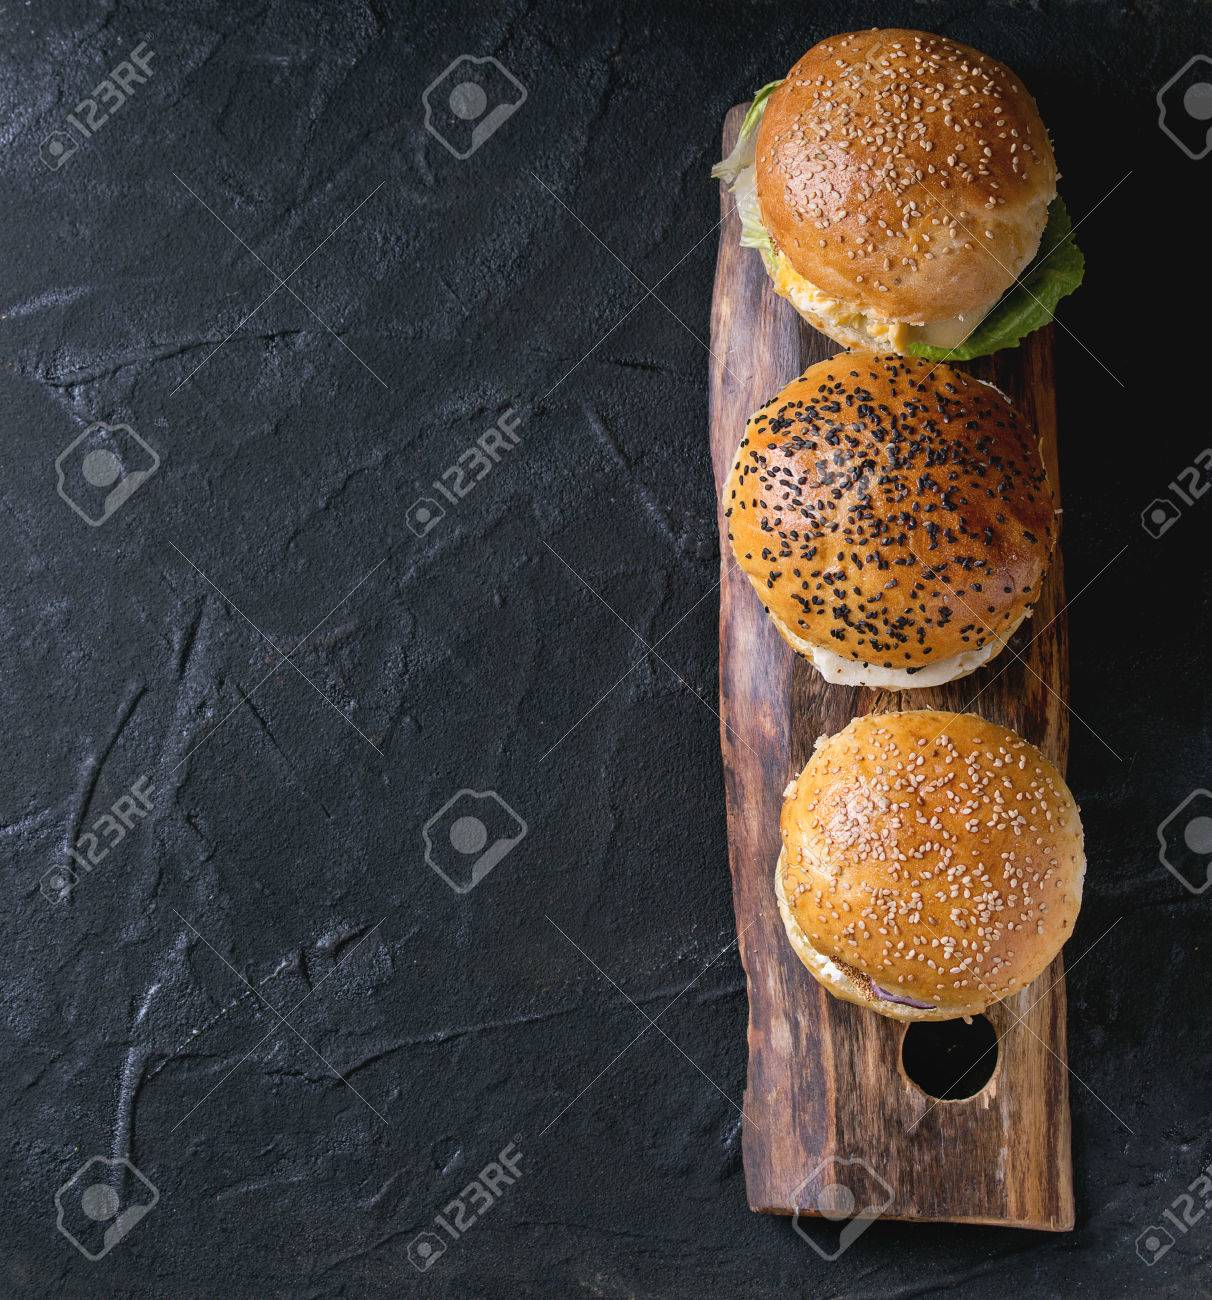 Three Homemade veggie burgers with sweet potato, black rice and red beans, served on wooden chopping board over black textured background. Top view - 55782672